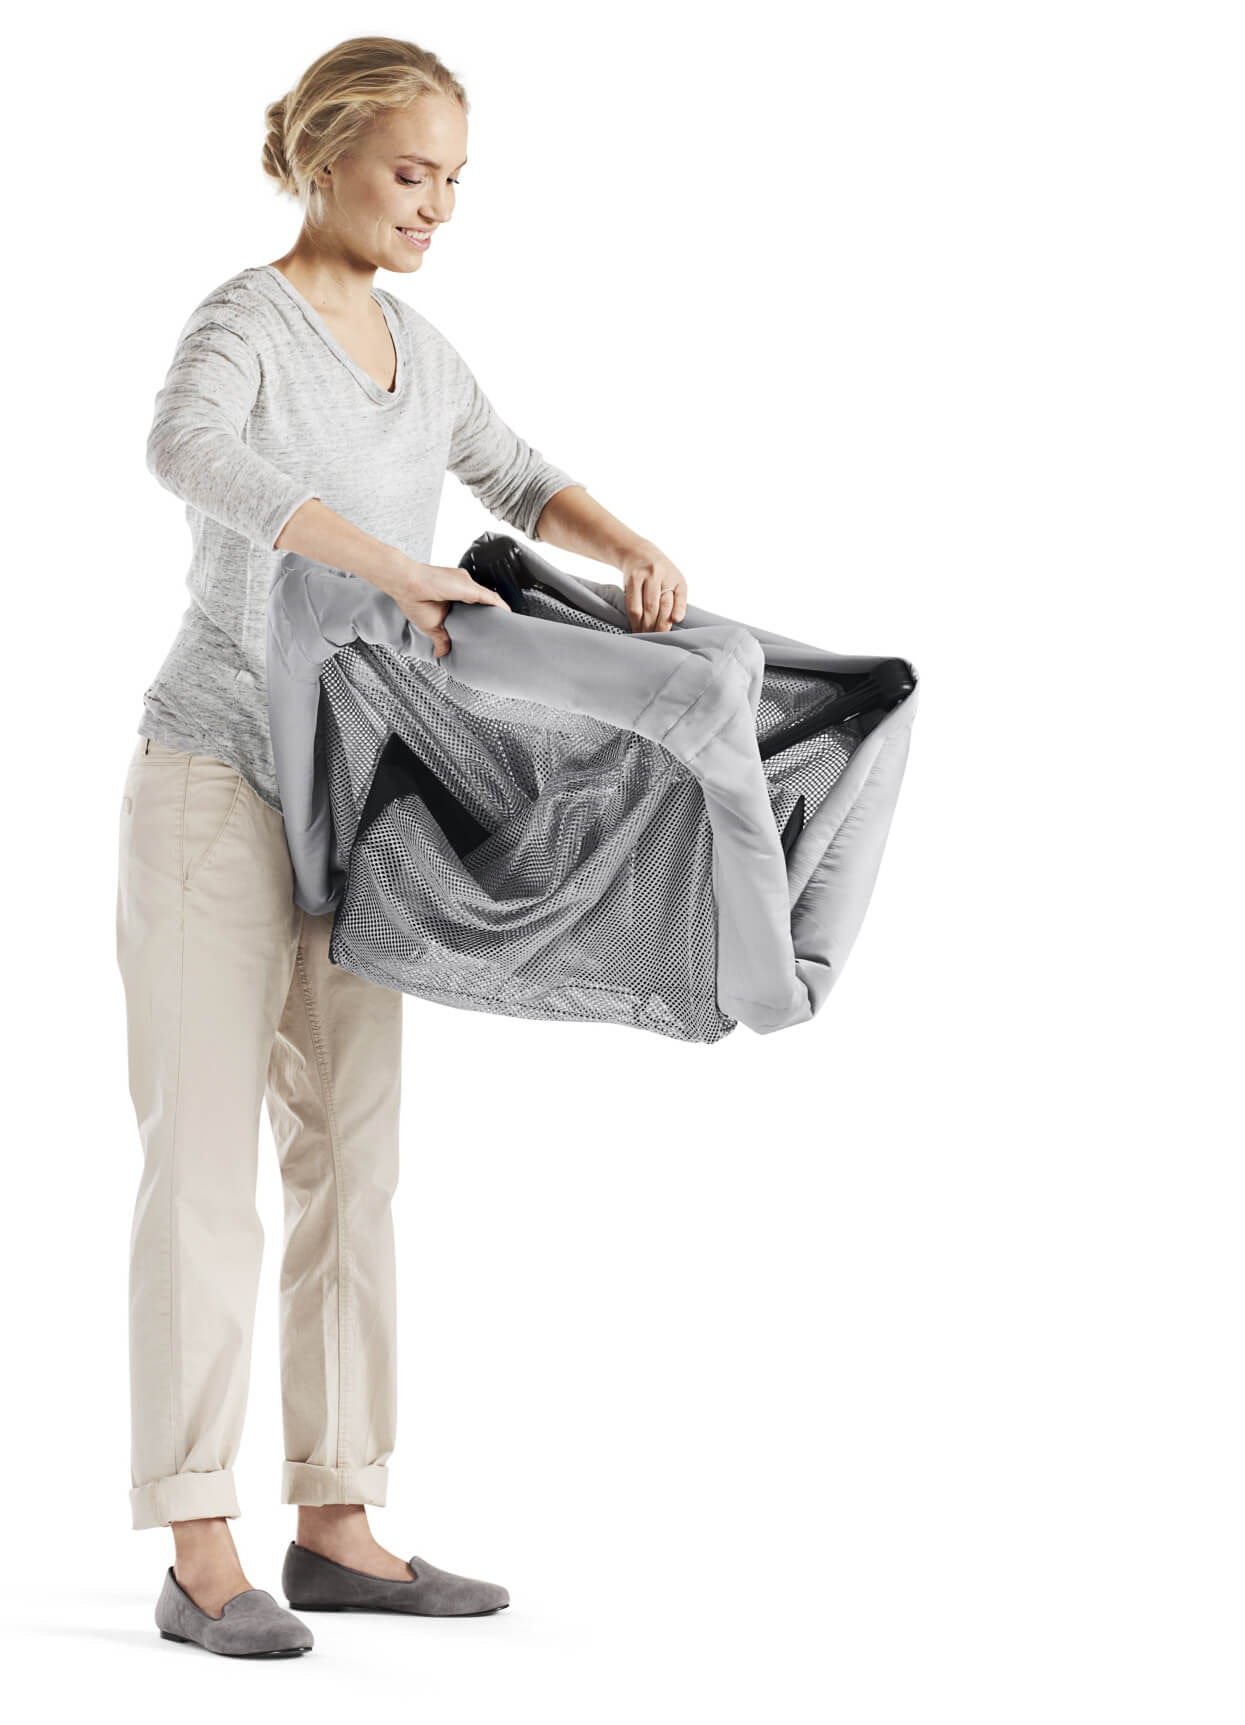 travel-cot-light-only-weighs-6kg